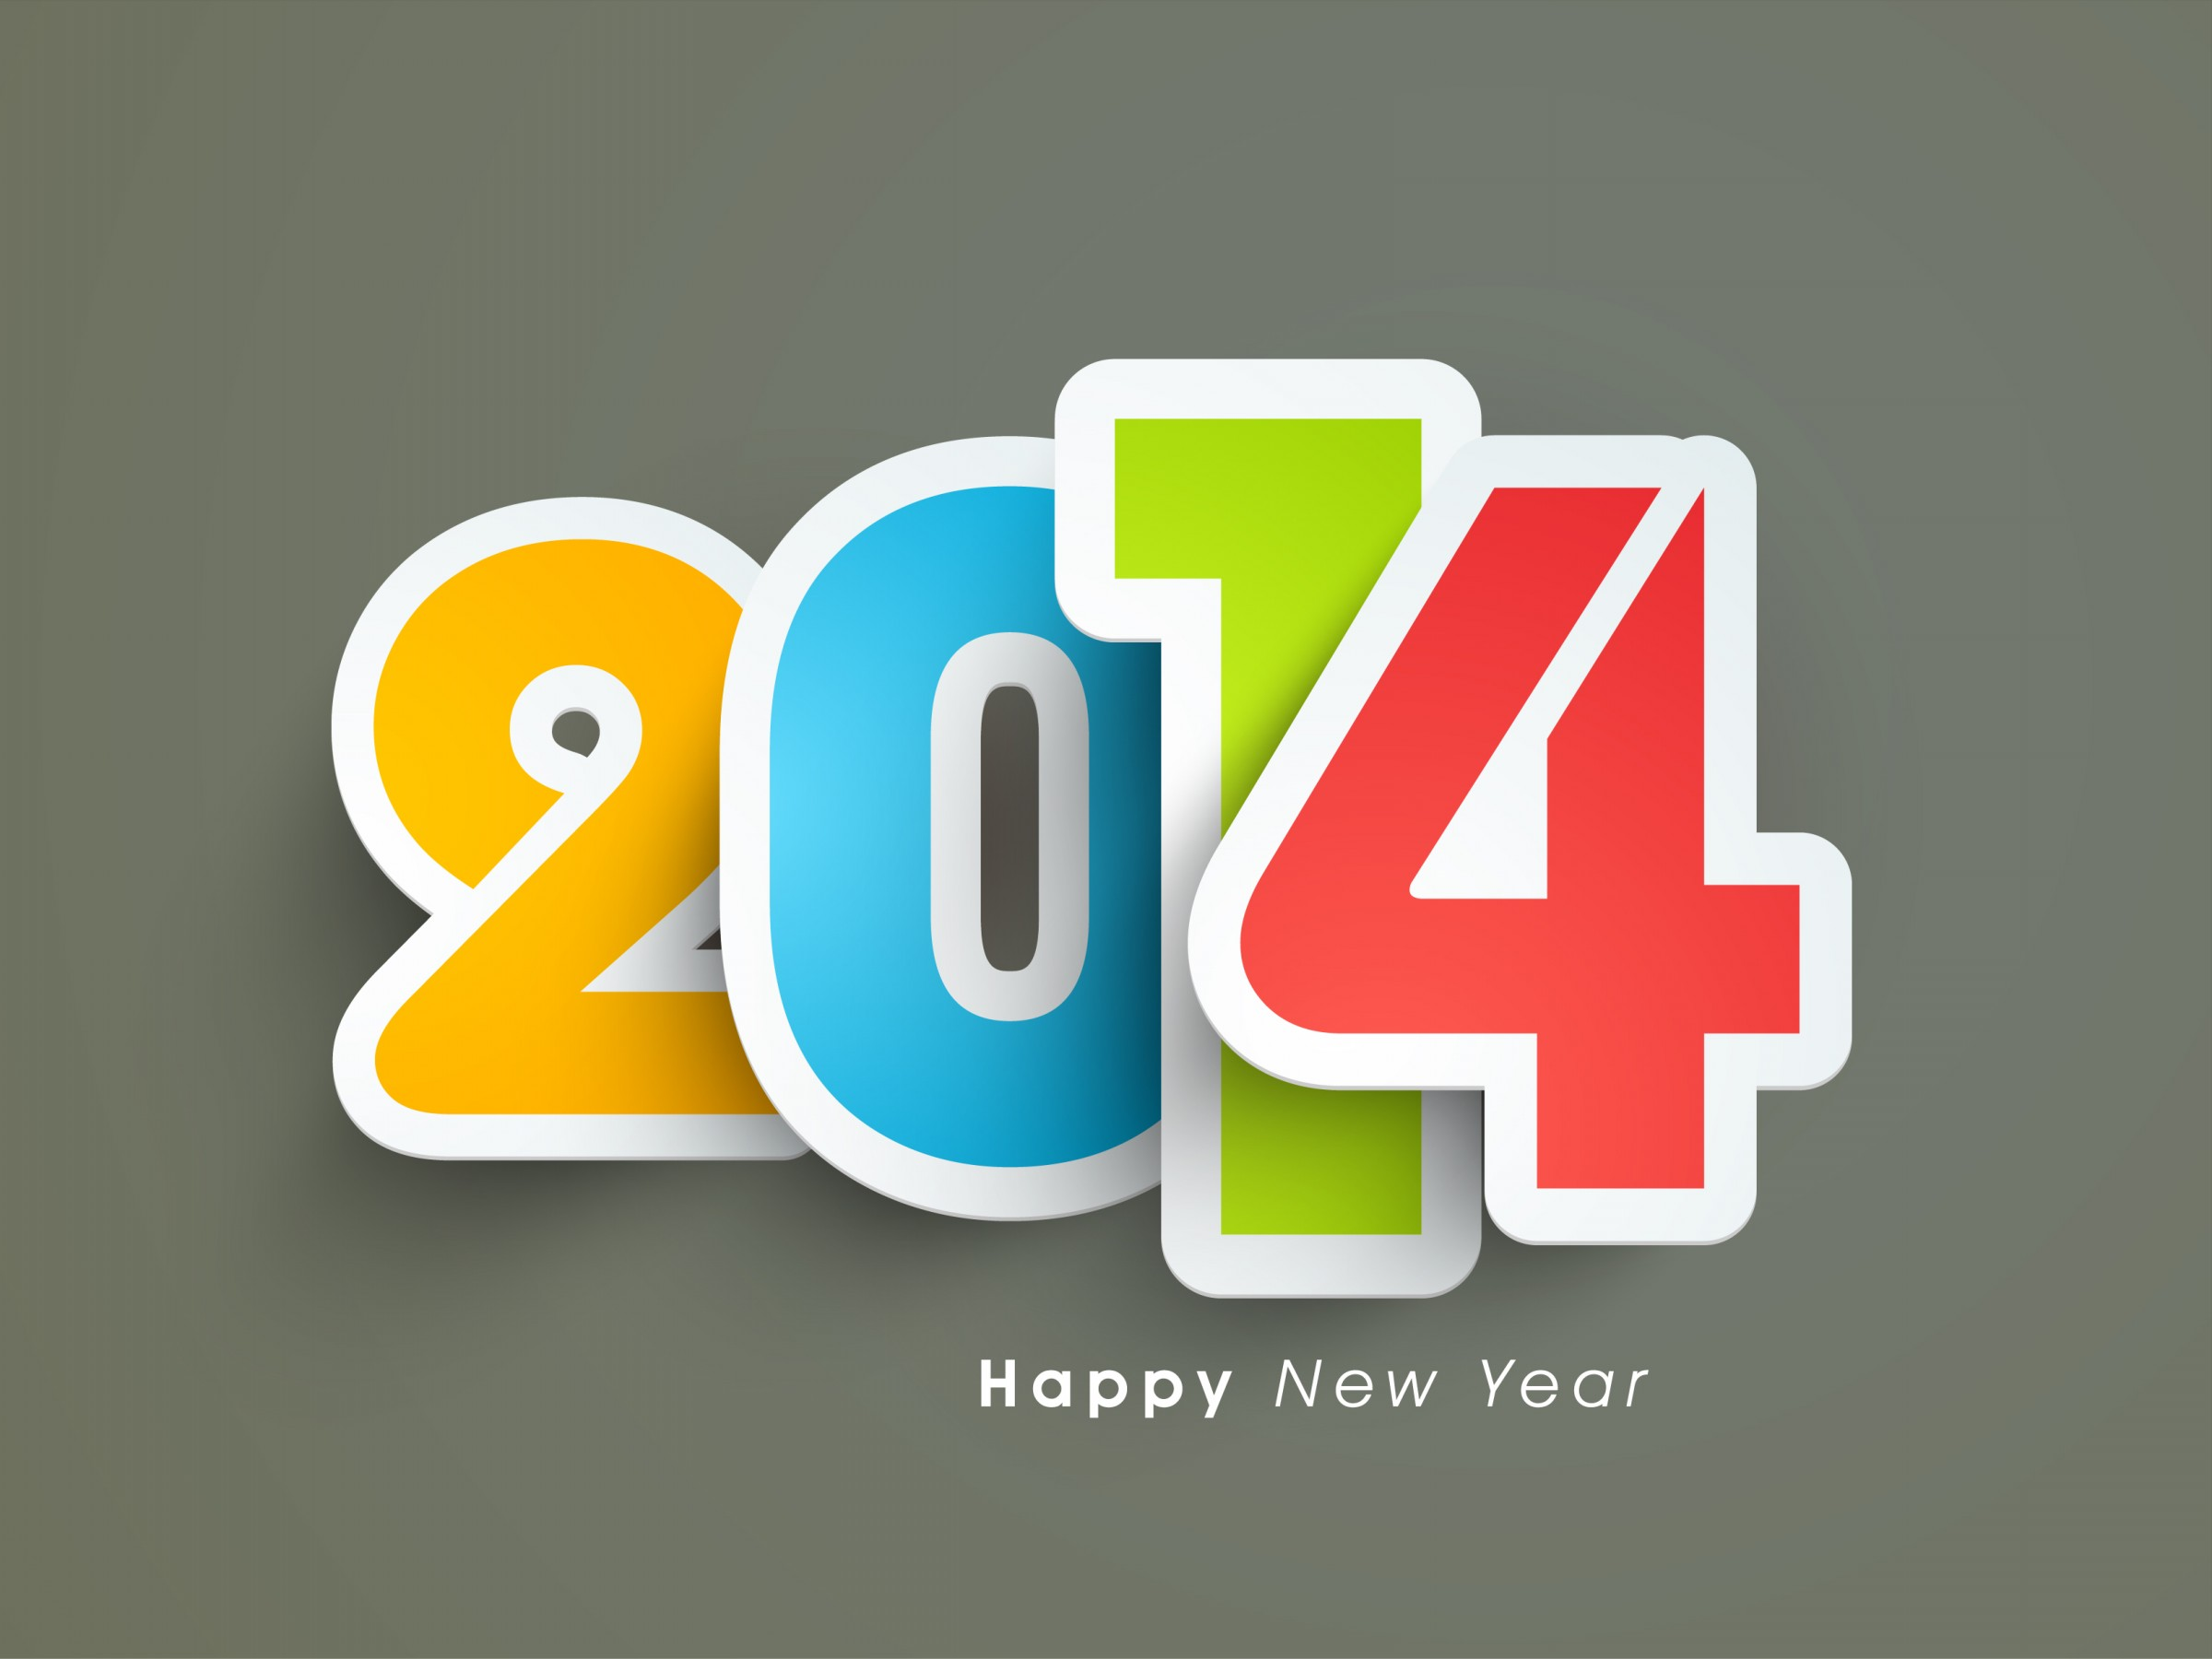 ����� ������� ����� ������ 2014 Happy-New-Year-2014-